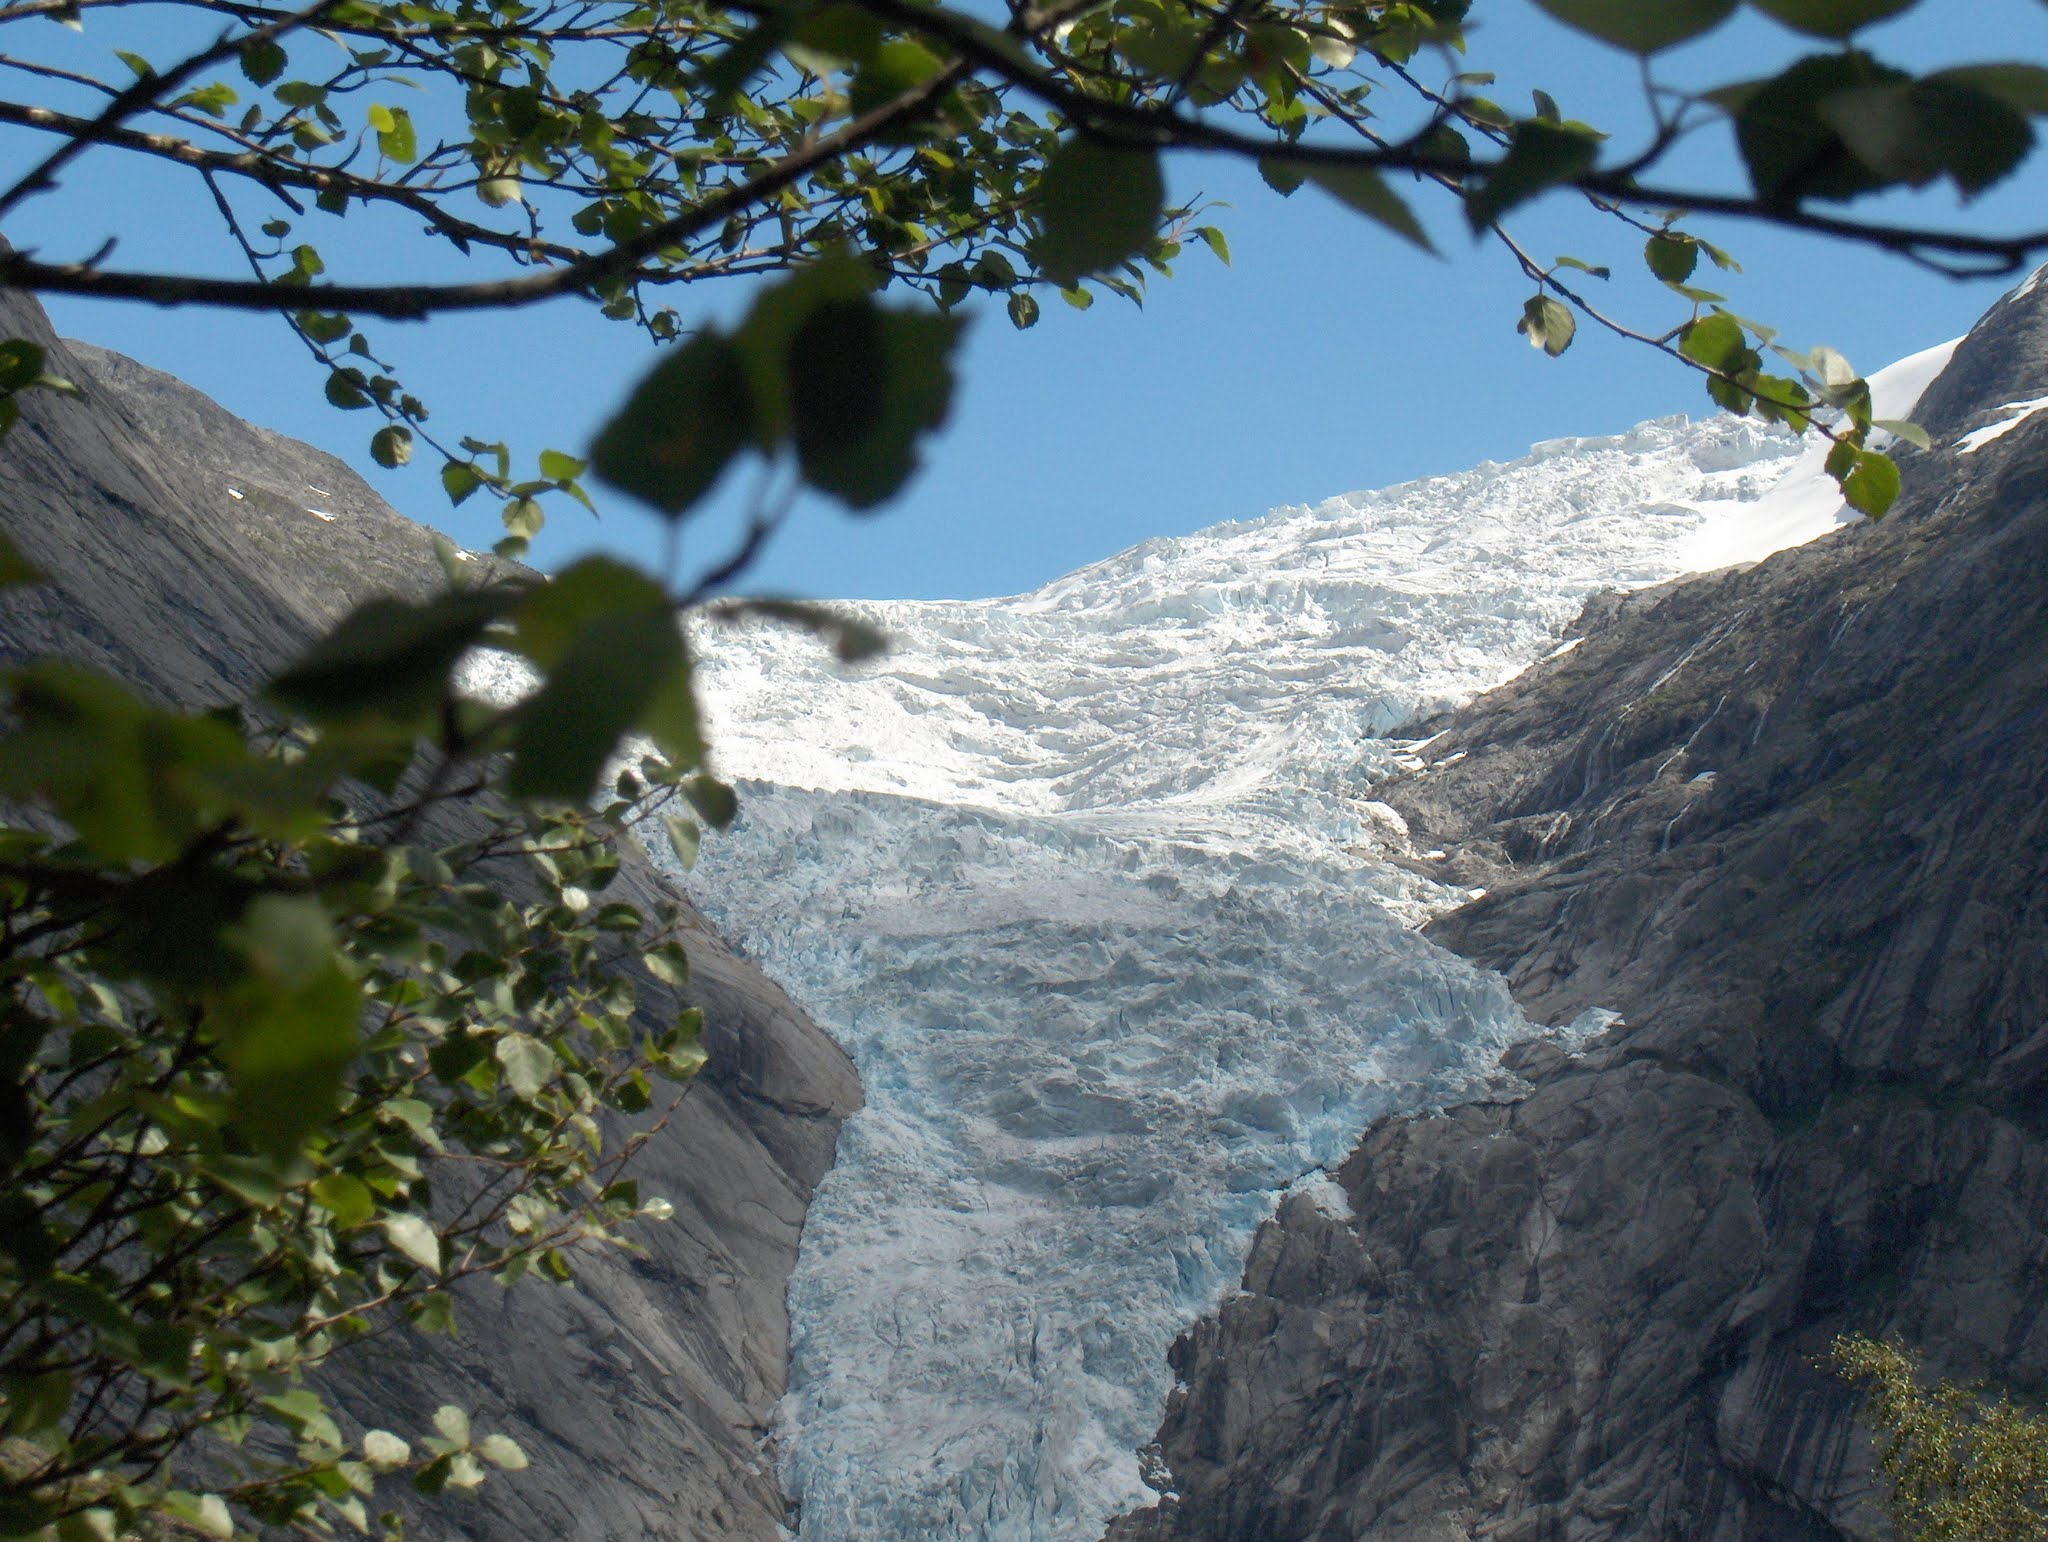 Briksdalsbre Glacier, Olden, Norway. All rights reserved.